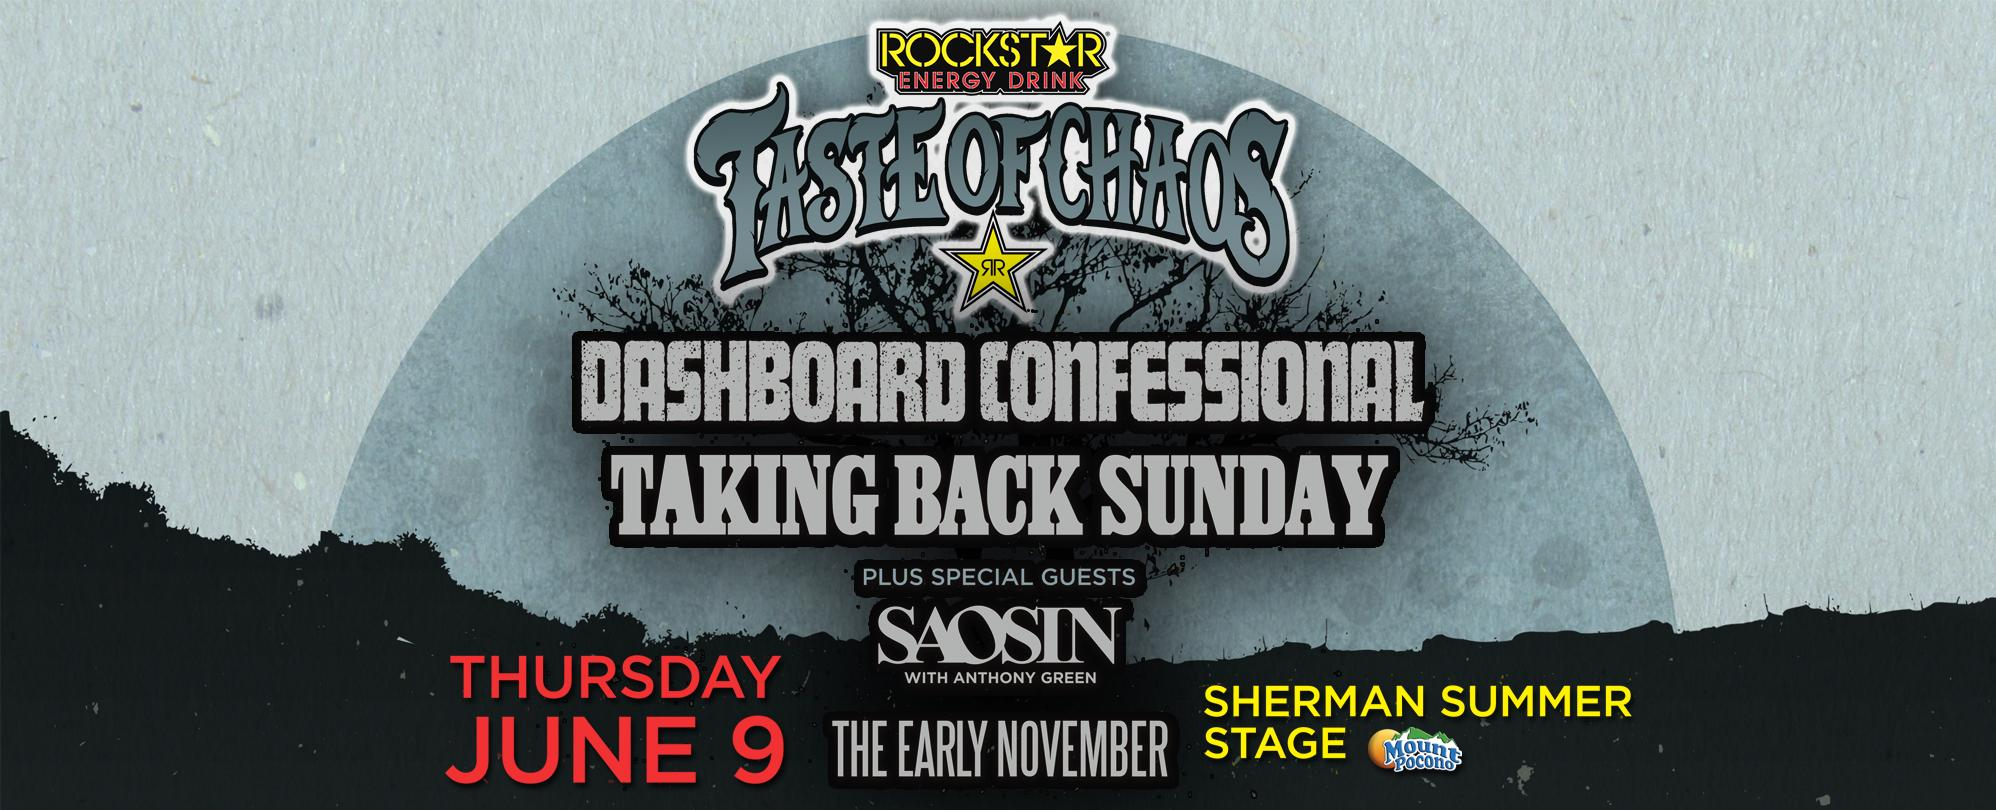 Rockstar Energy Drink Taste Of Chaos Tour ft. Dashboard Confessional, Taking Back Sunday, Saosin, The Early November